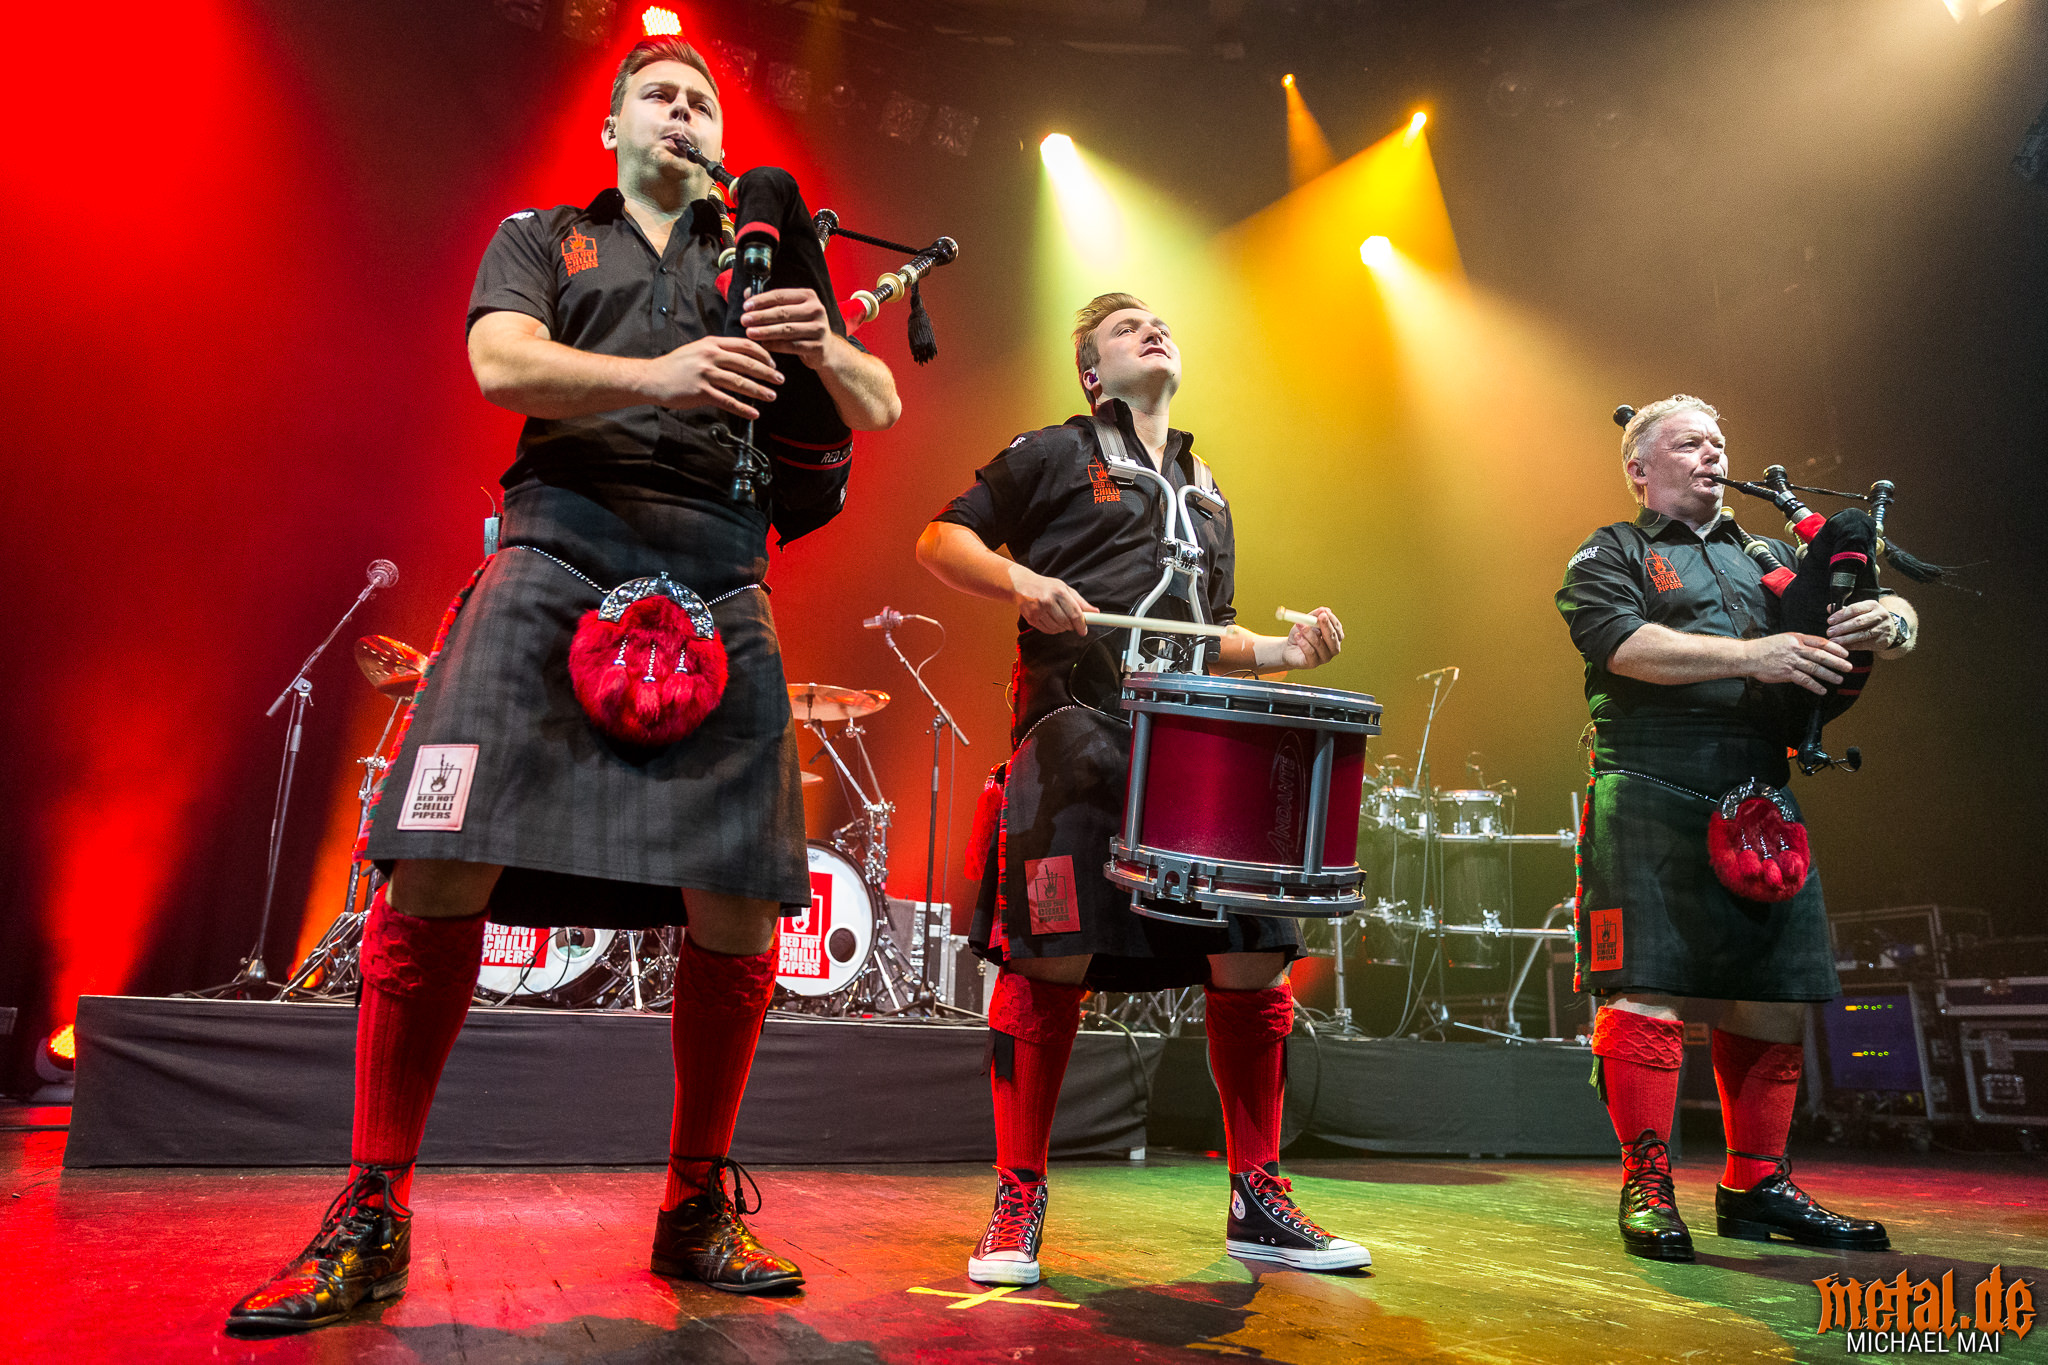 Red Hot Chilli Pipers - Live on Tour 2019 in Mannheim • metal.de